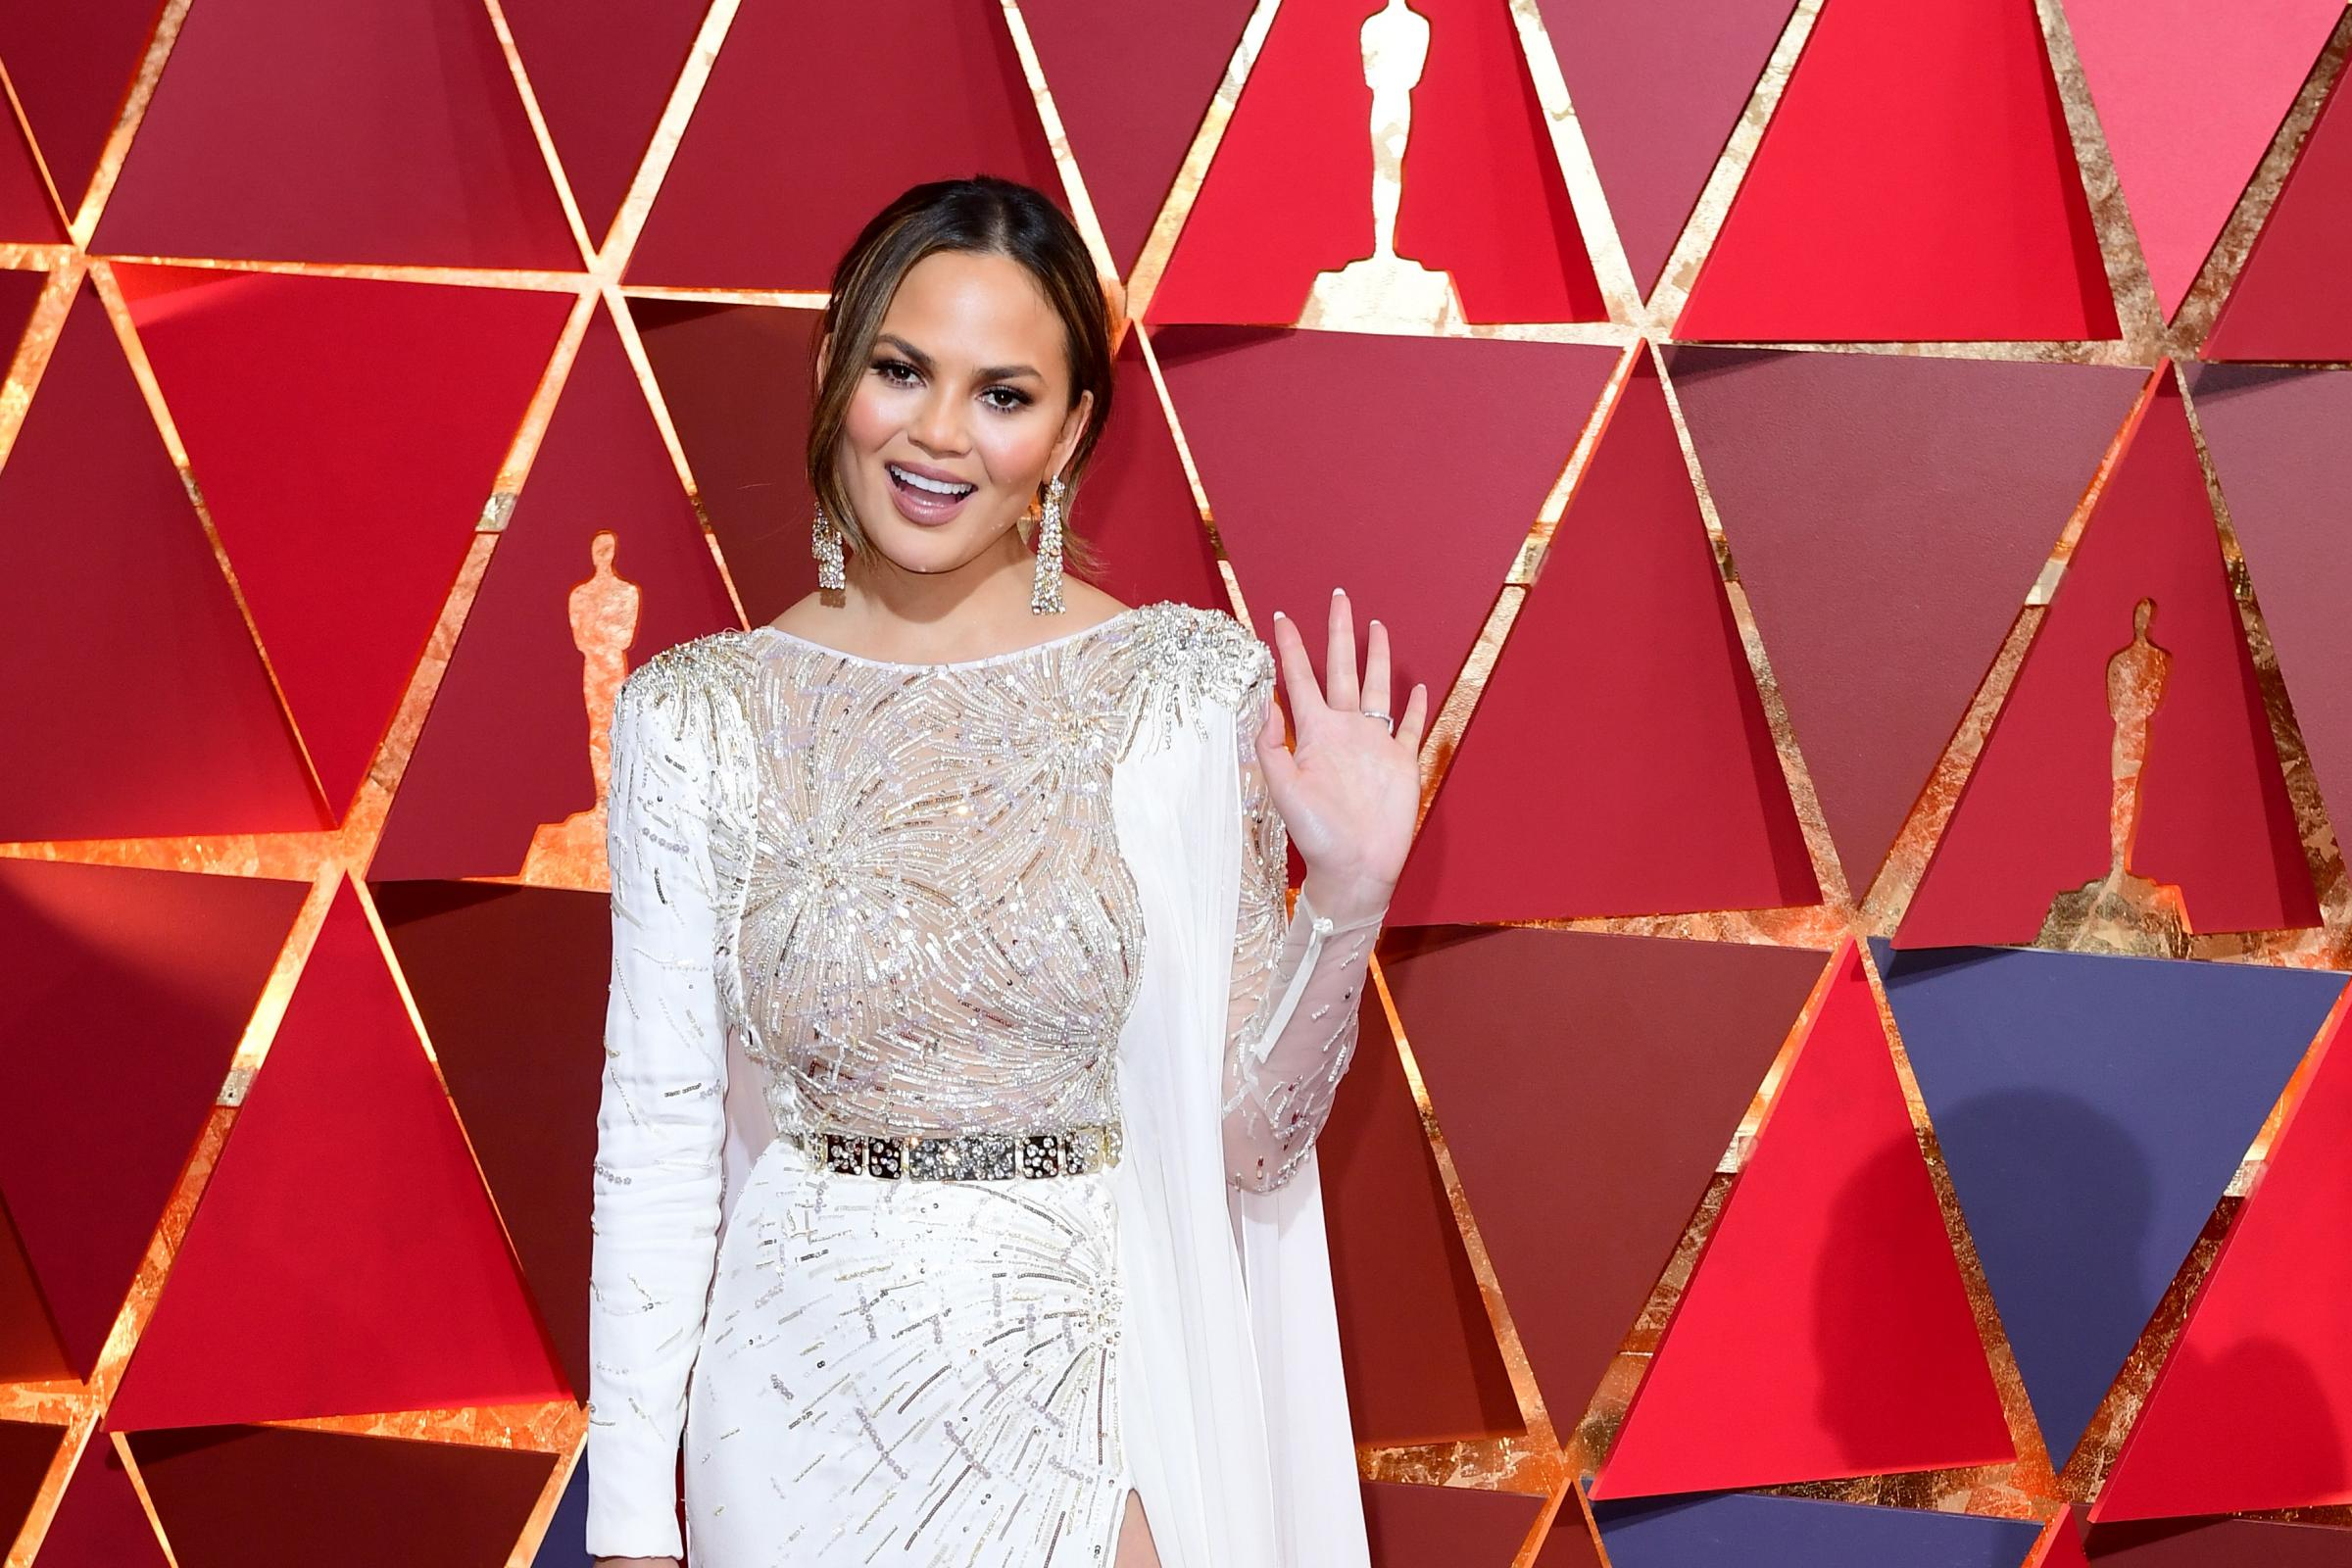 Chrissy Teigen arriving at the 89th Academy Awards